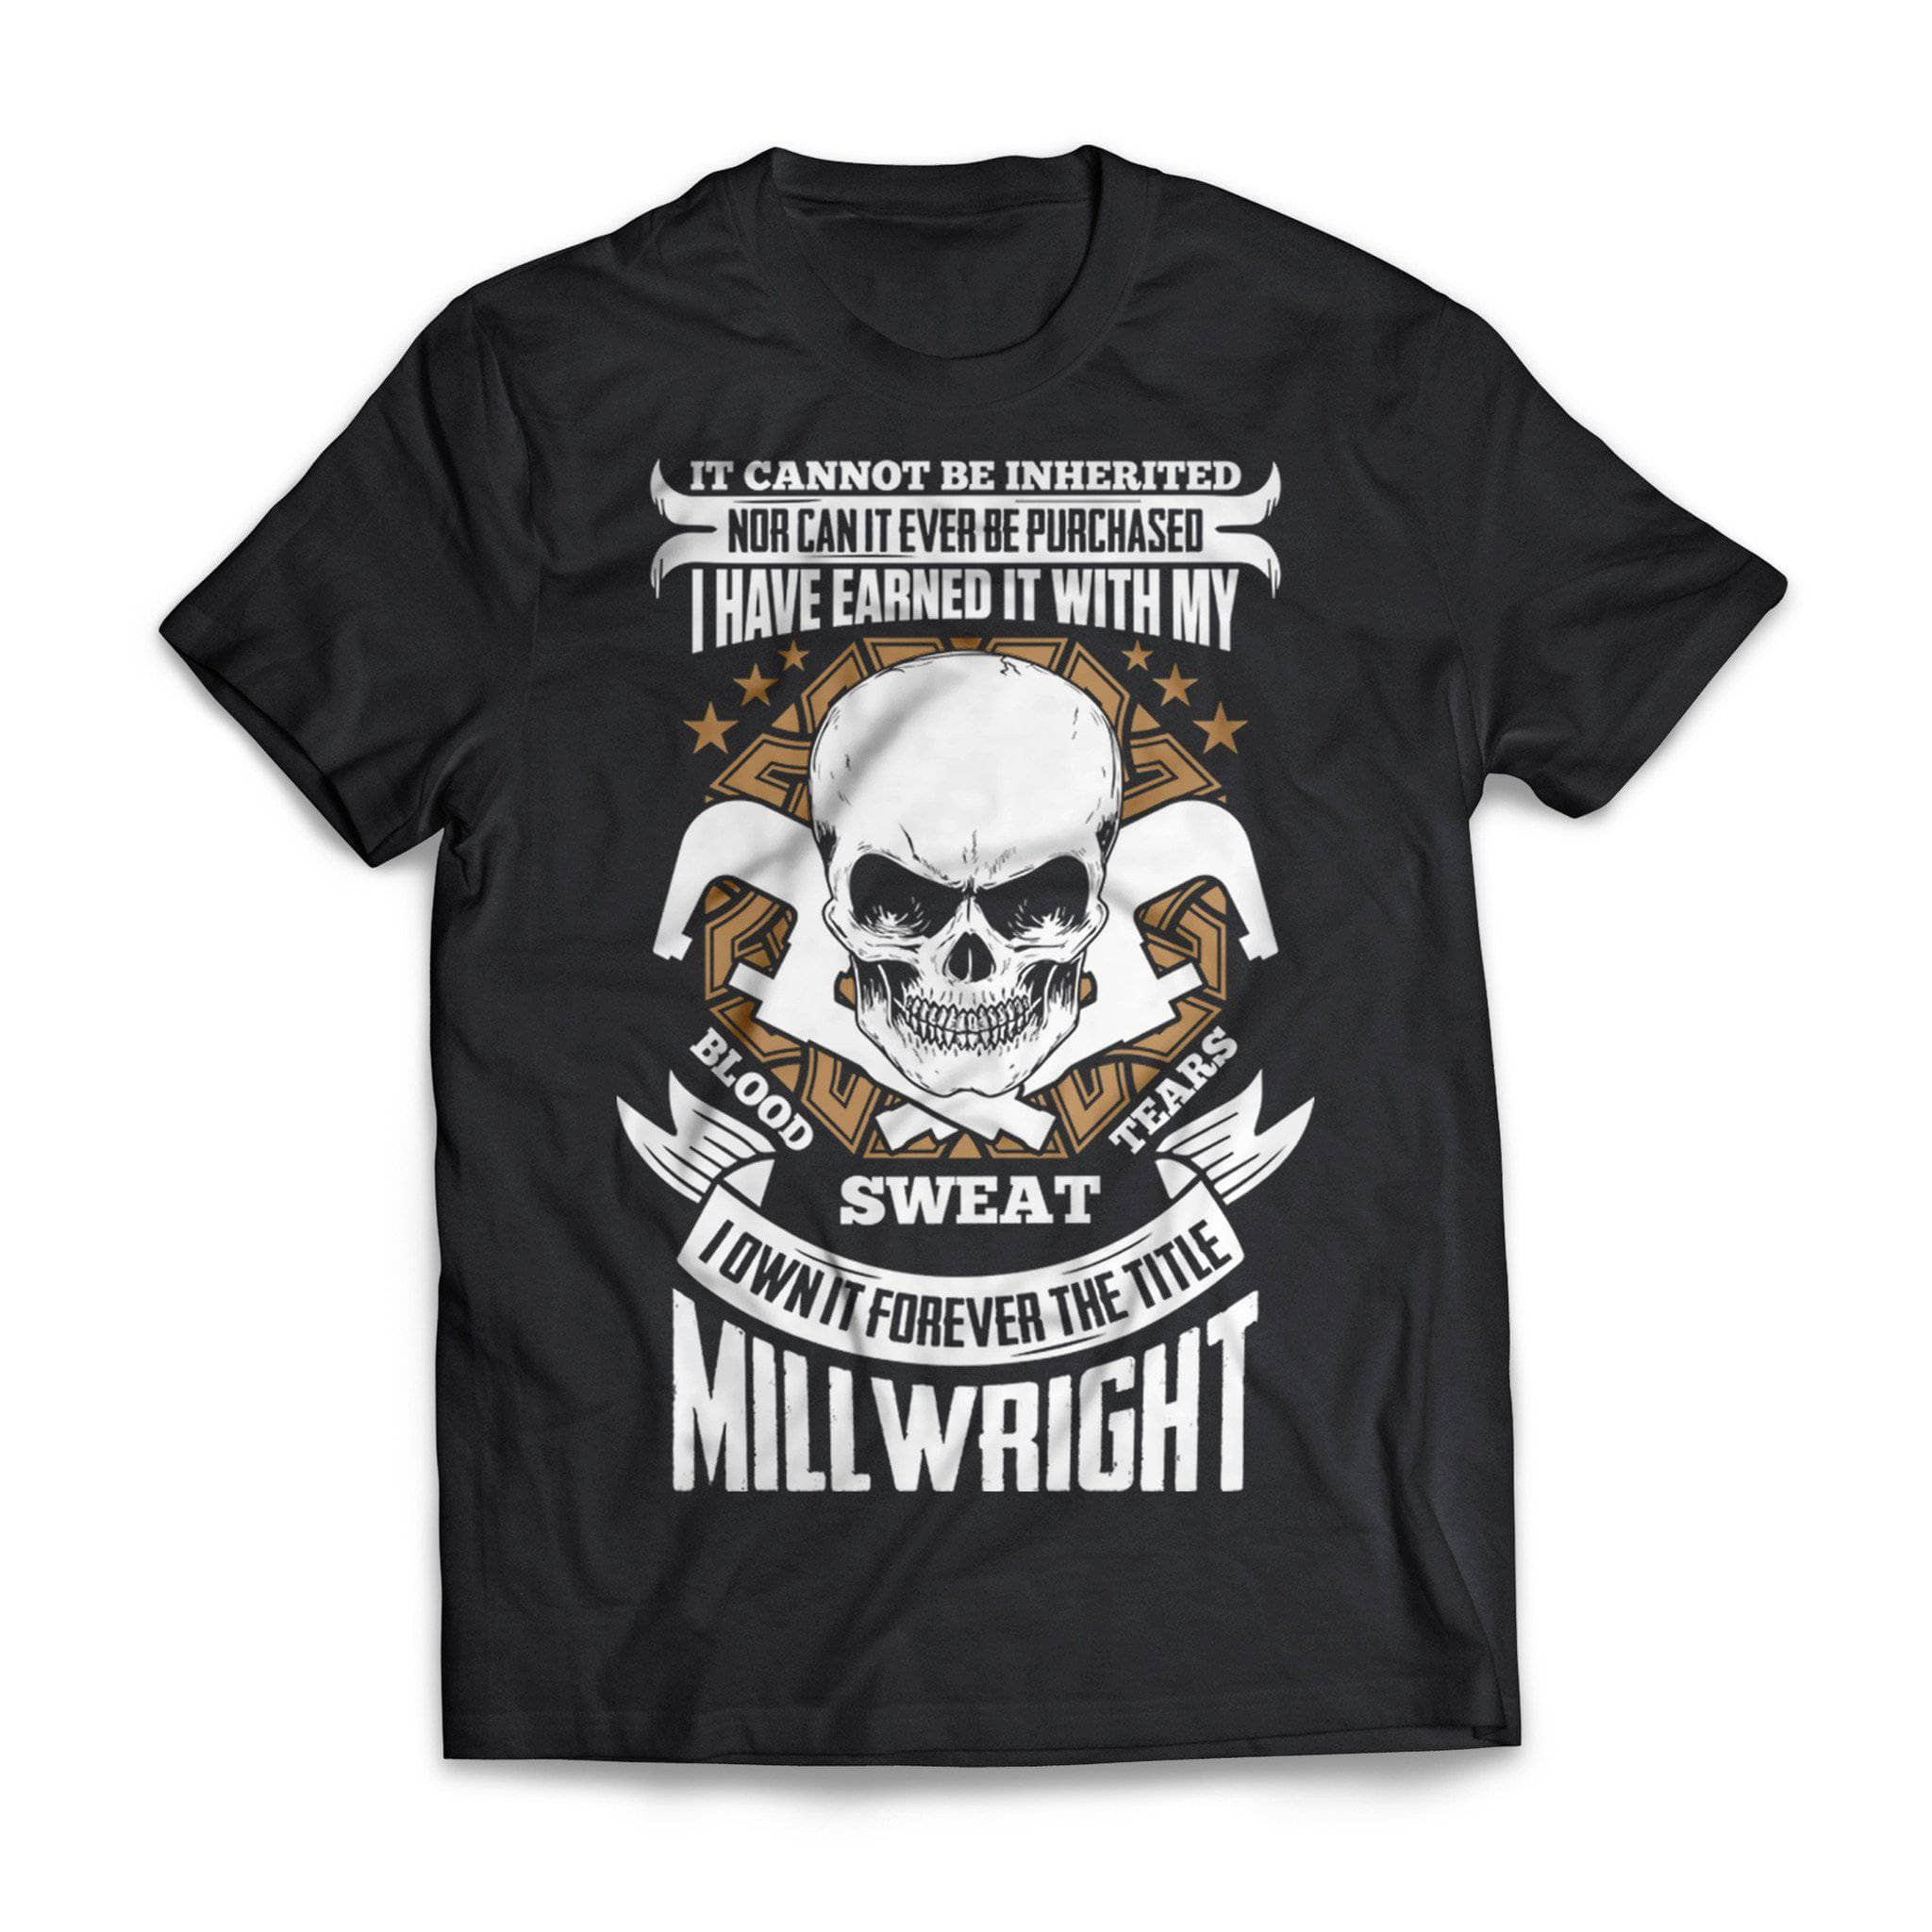 The Title Millwright